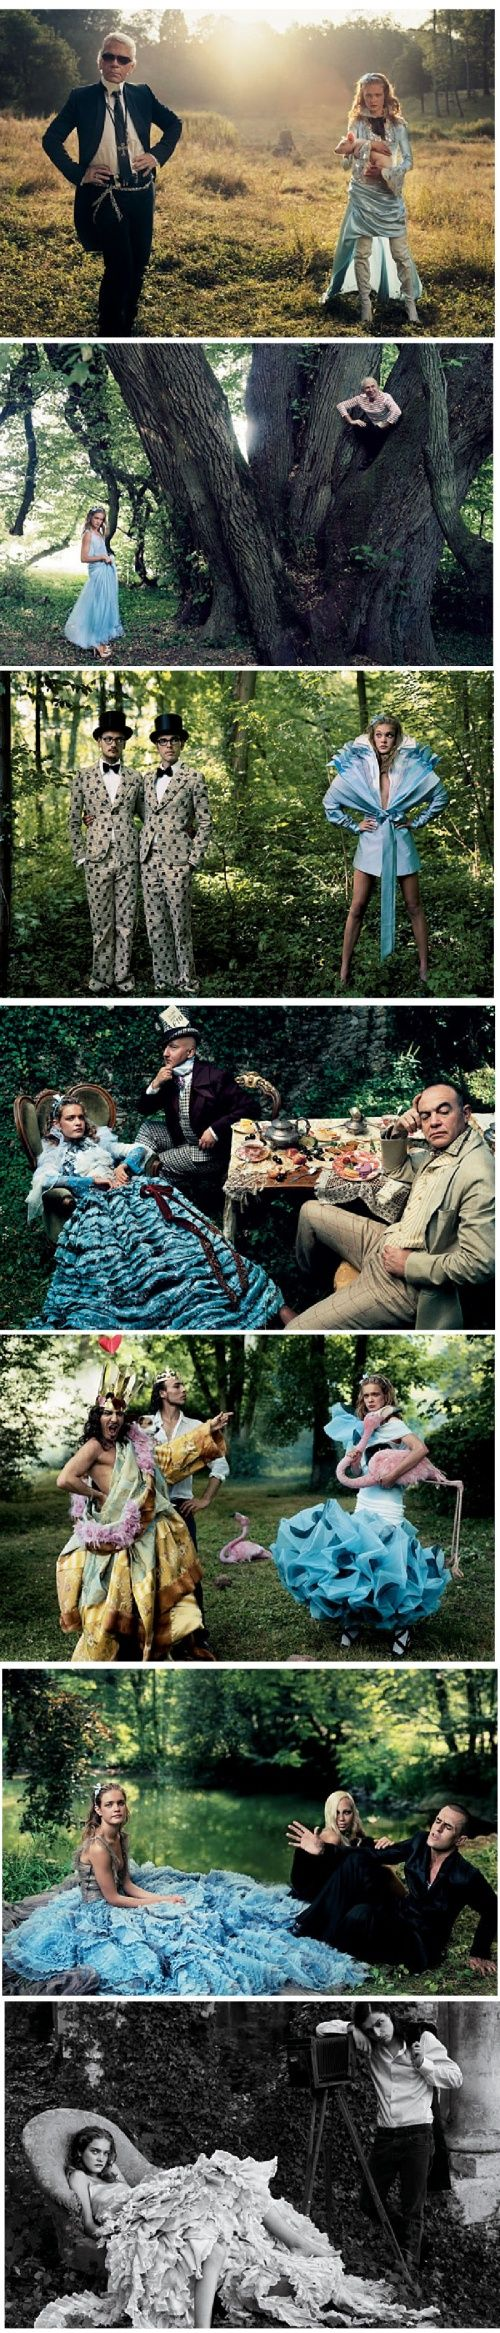 """Photography legend, Annie Leibovitz did a 'Alice in Wonderland' inspired photo shoot for Vogue Magazine featuring fashion icons and their designs … The following gowns would translate brilliantly into wedding gowns, and would make a perfect """"something blue!"""""""